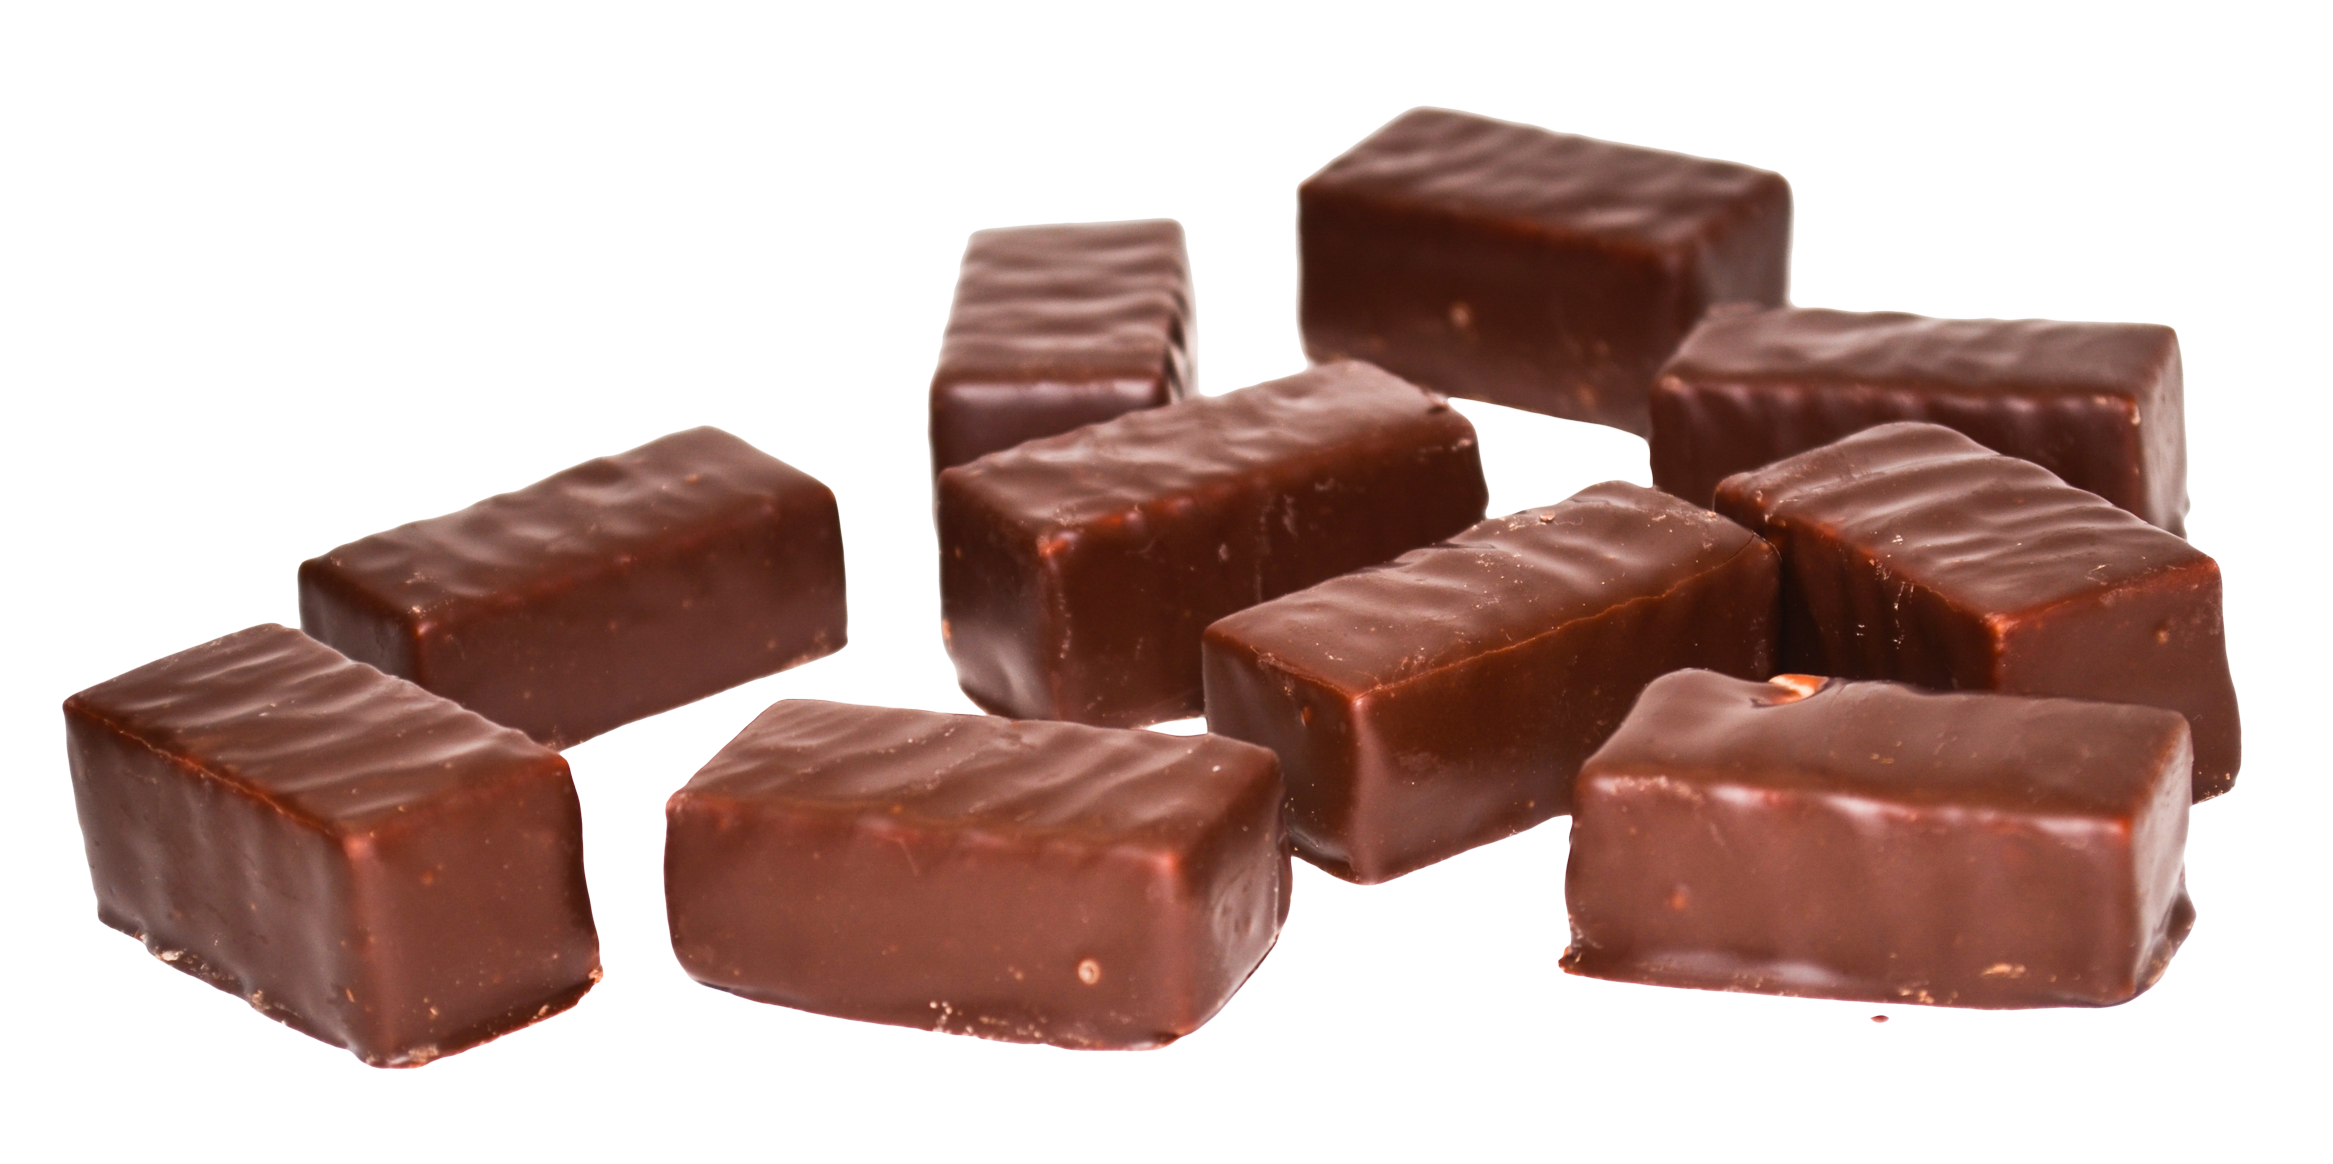 Png chocolate. Images pngpix transparent image